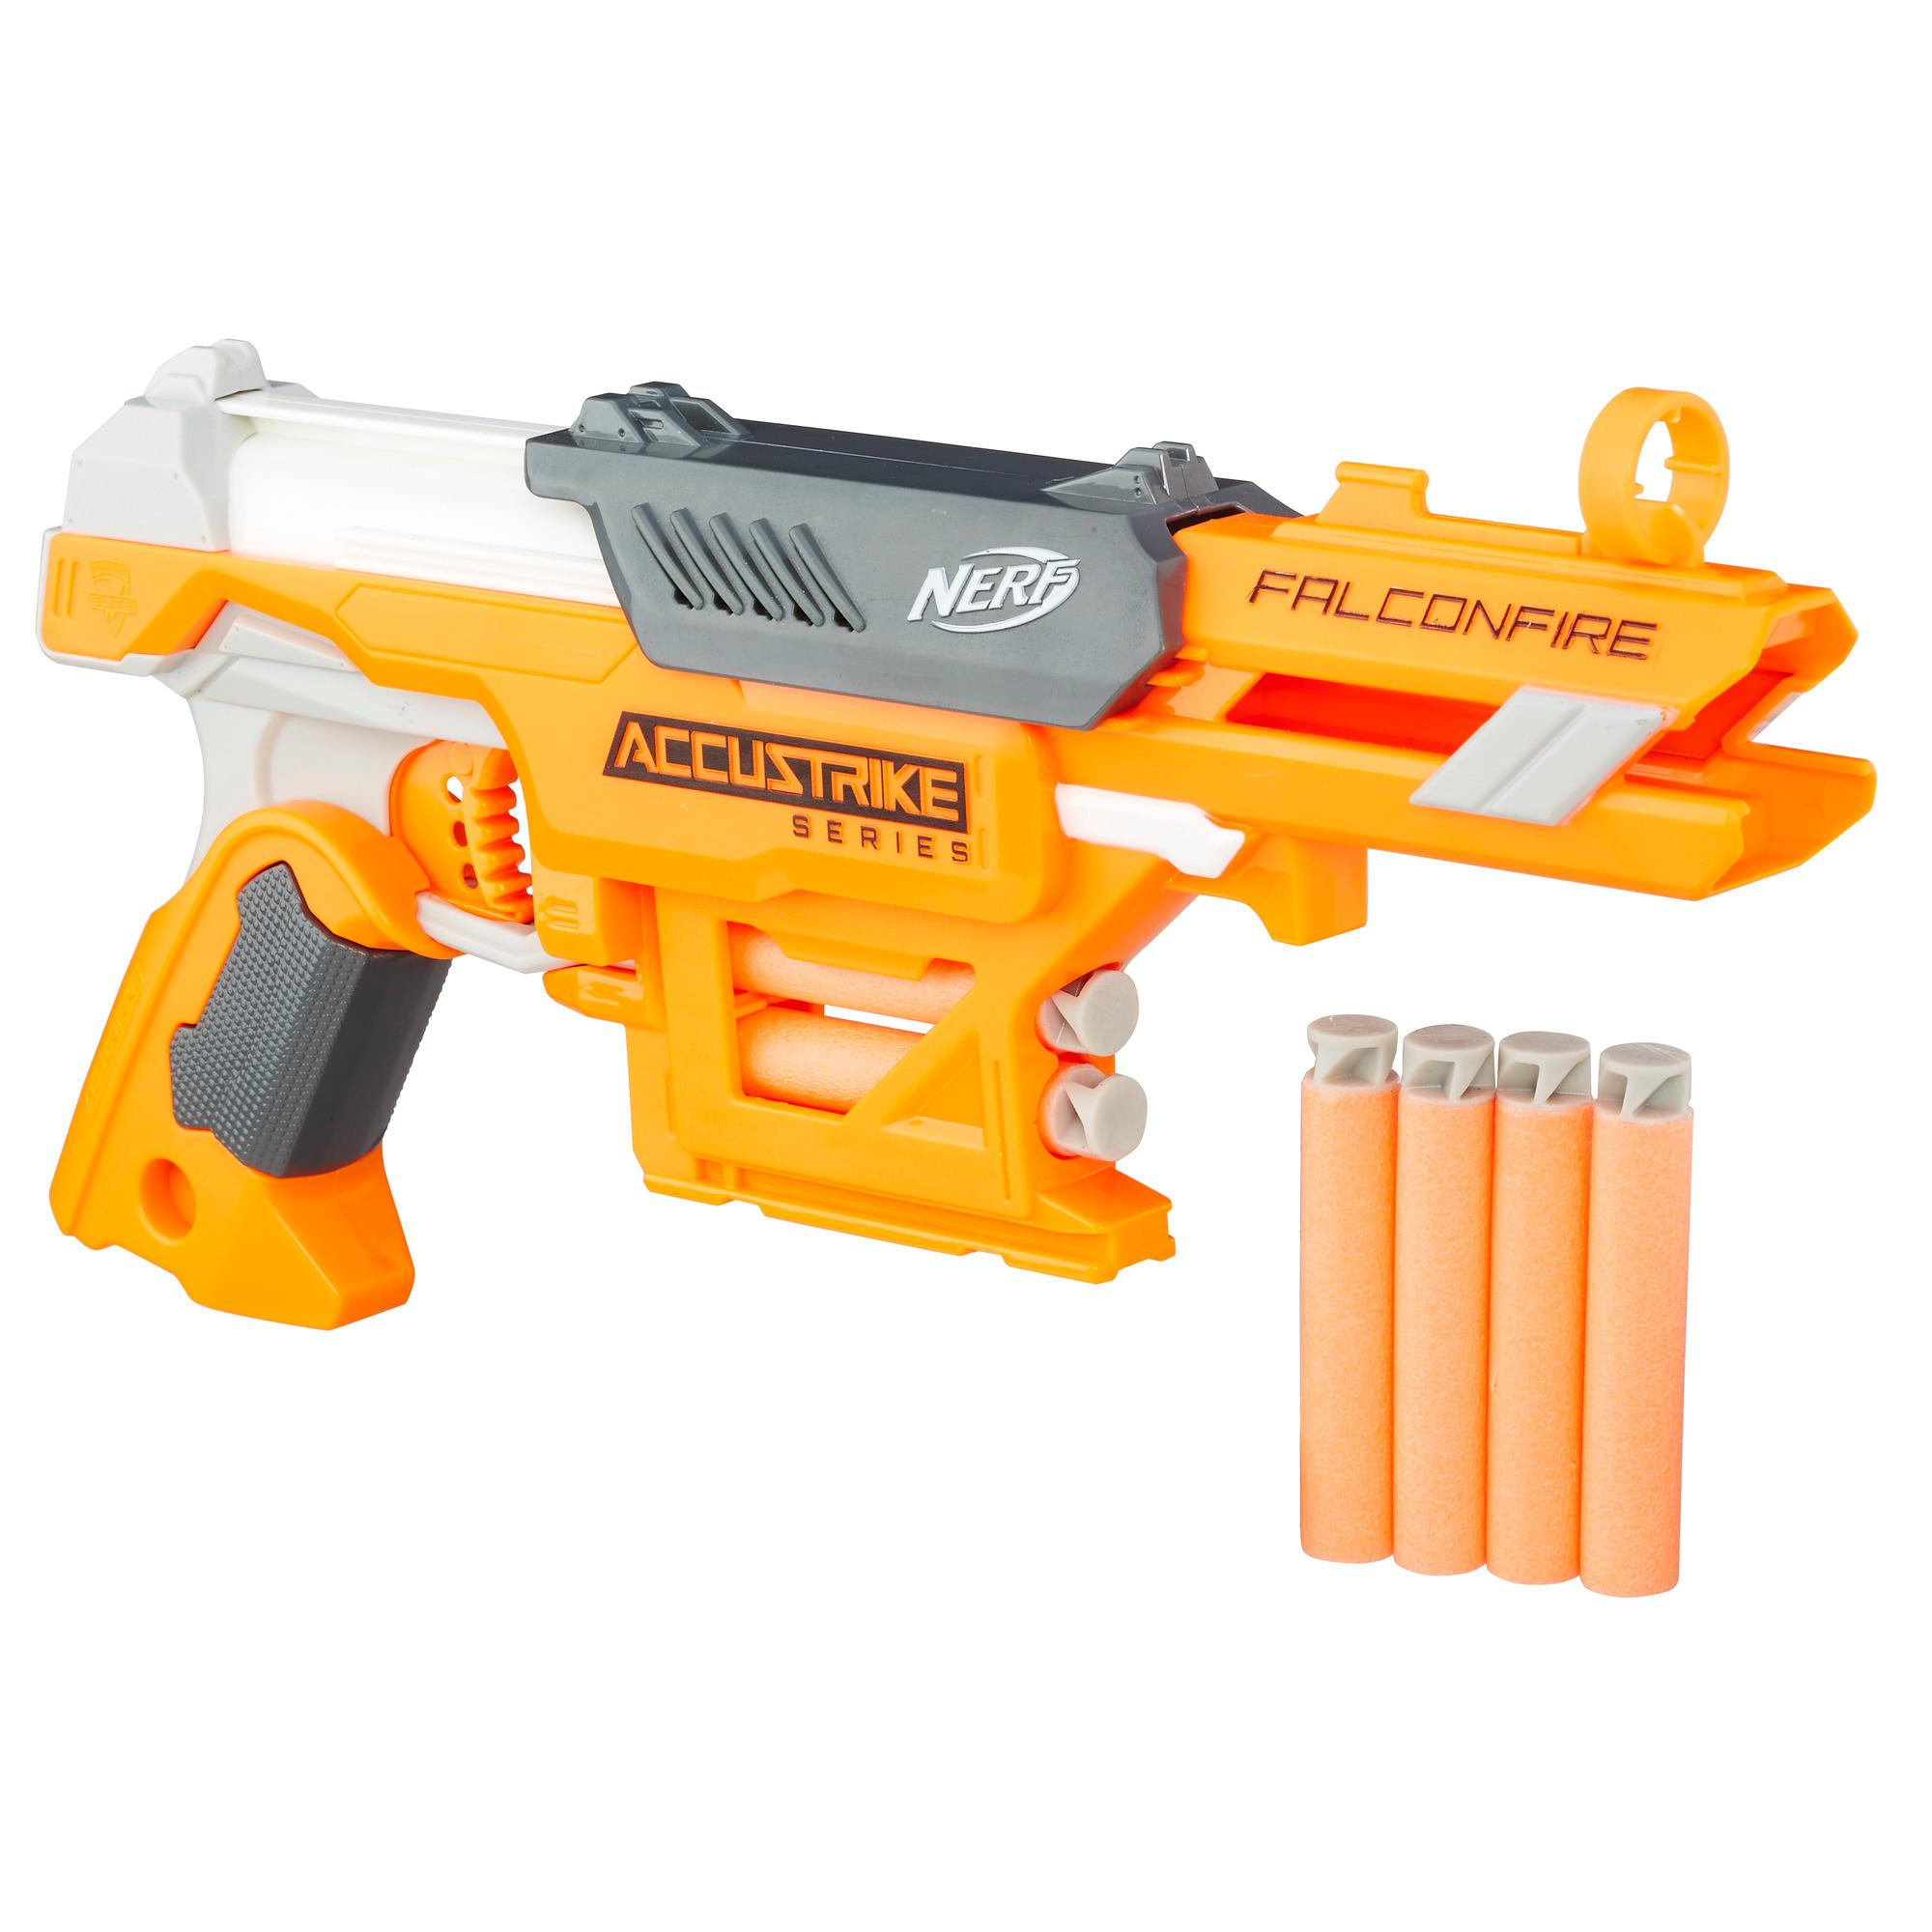 Nerf N-Strike Elite AccuStrike Series FalconFire